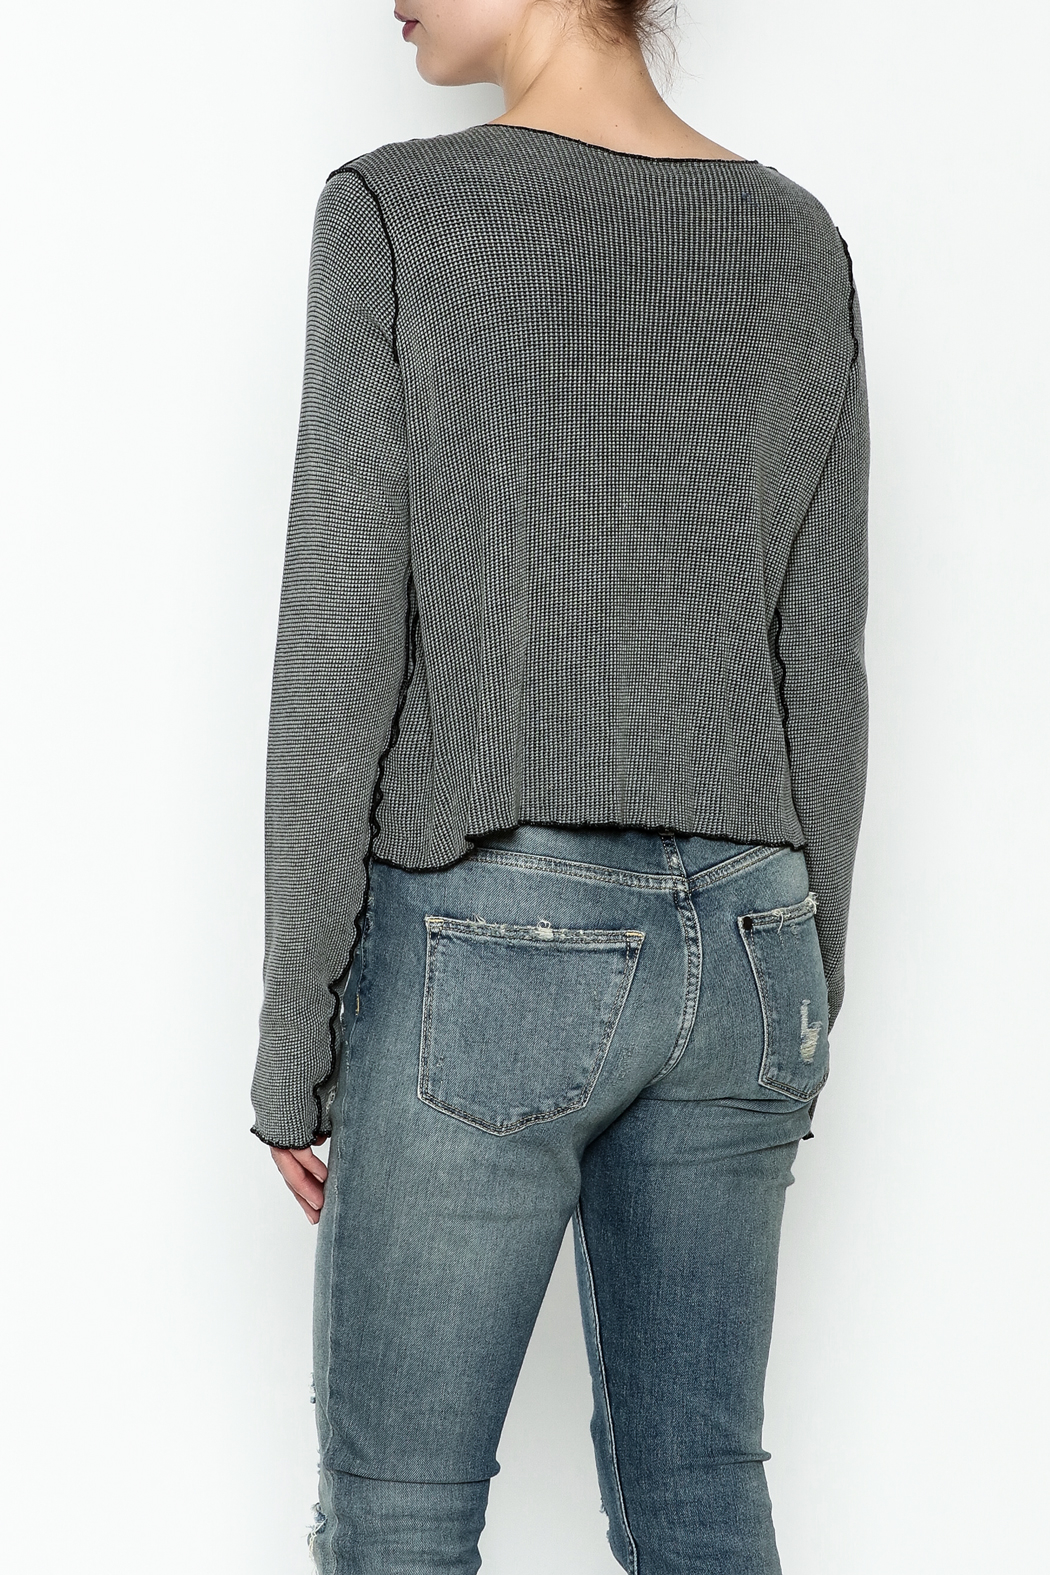 Cut Loose Pullover Top - Back Cropped Image